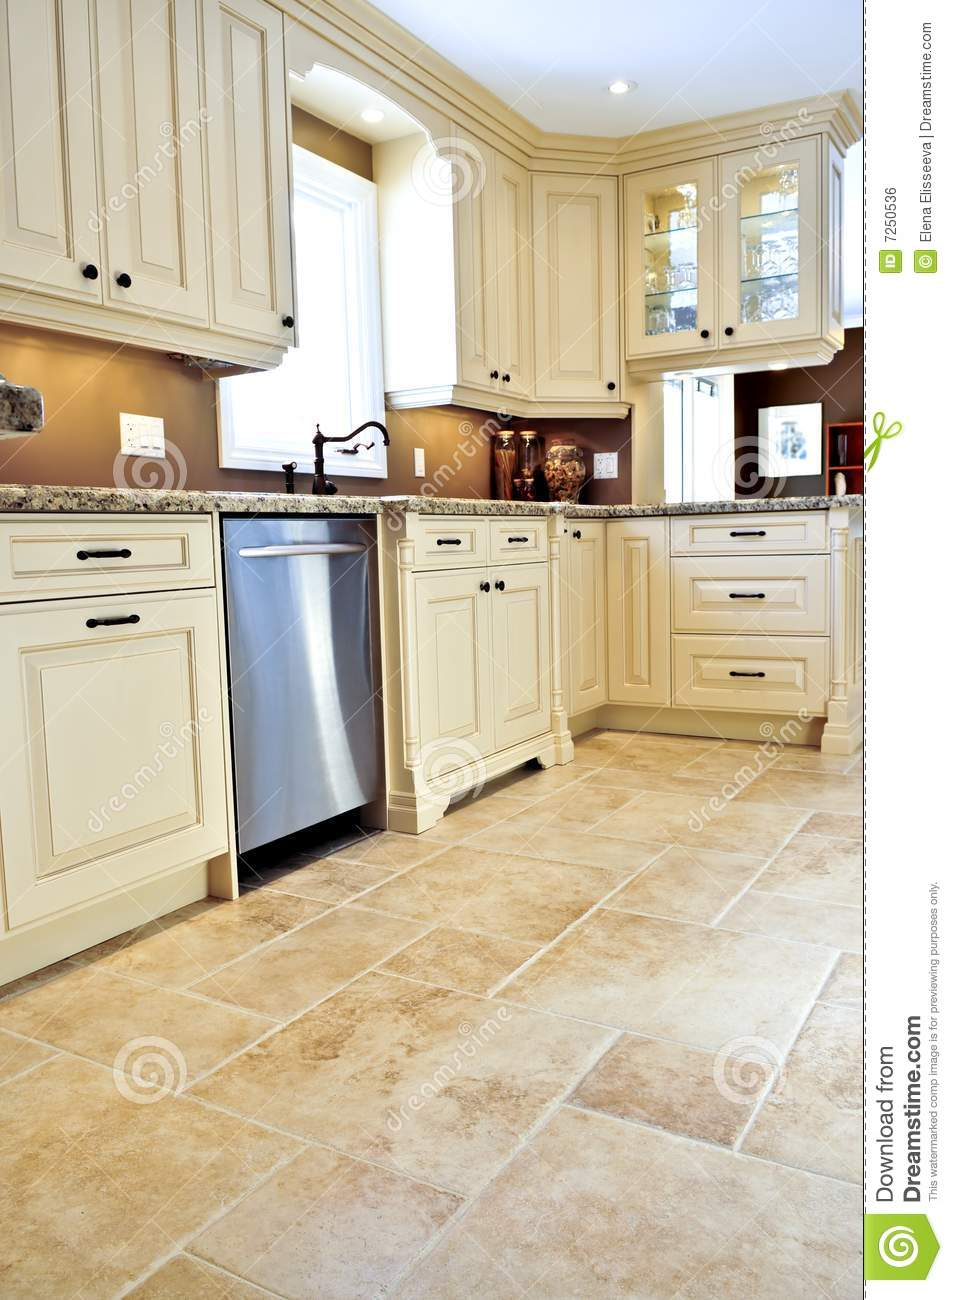 Floor For Kitchen Tile Floor In Modern Kitchen Royalty Free Stock Image Image 7250536